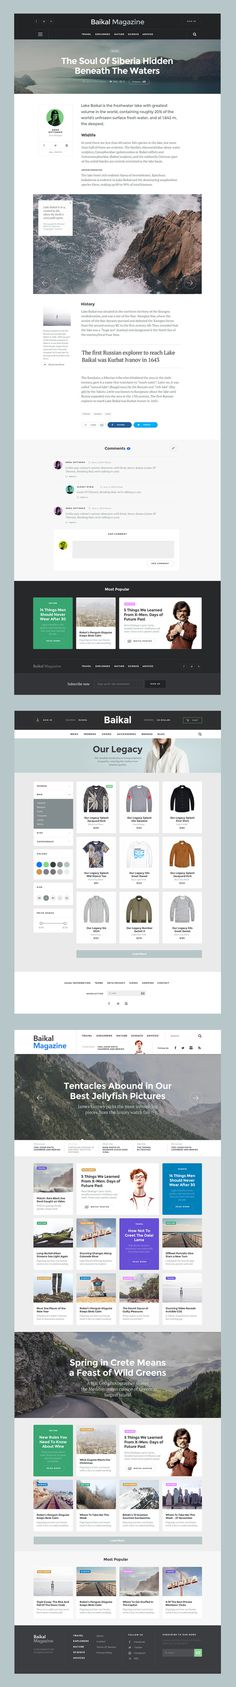 Baikal_preview_samples #design #ui #website #kit #web